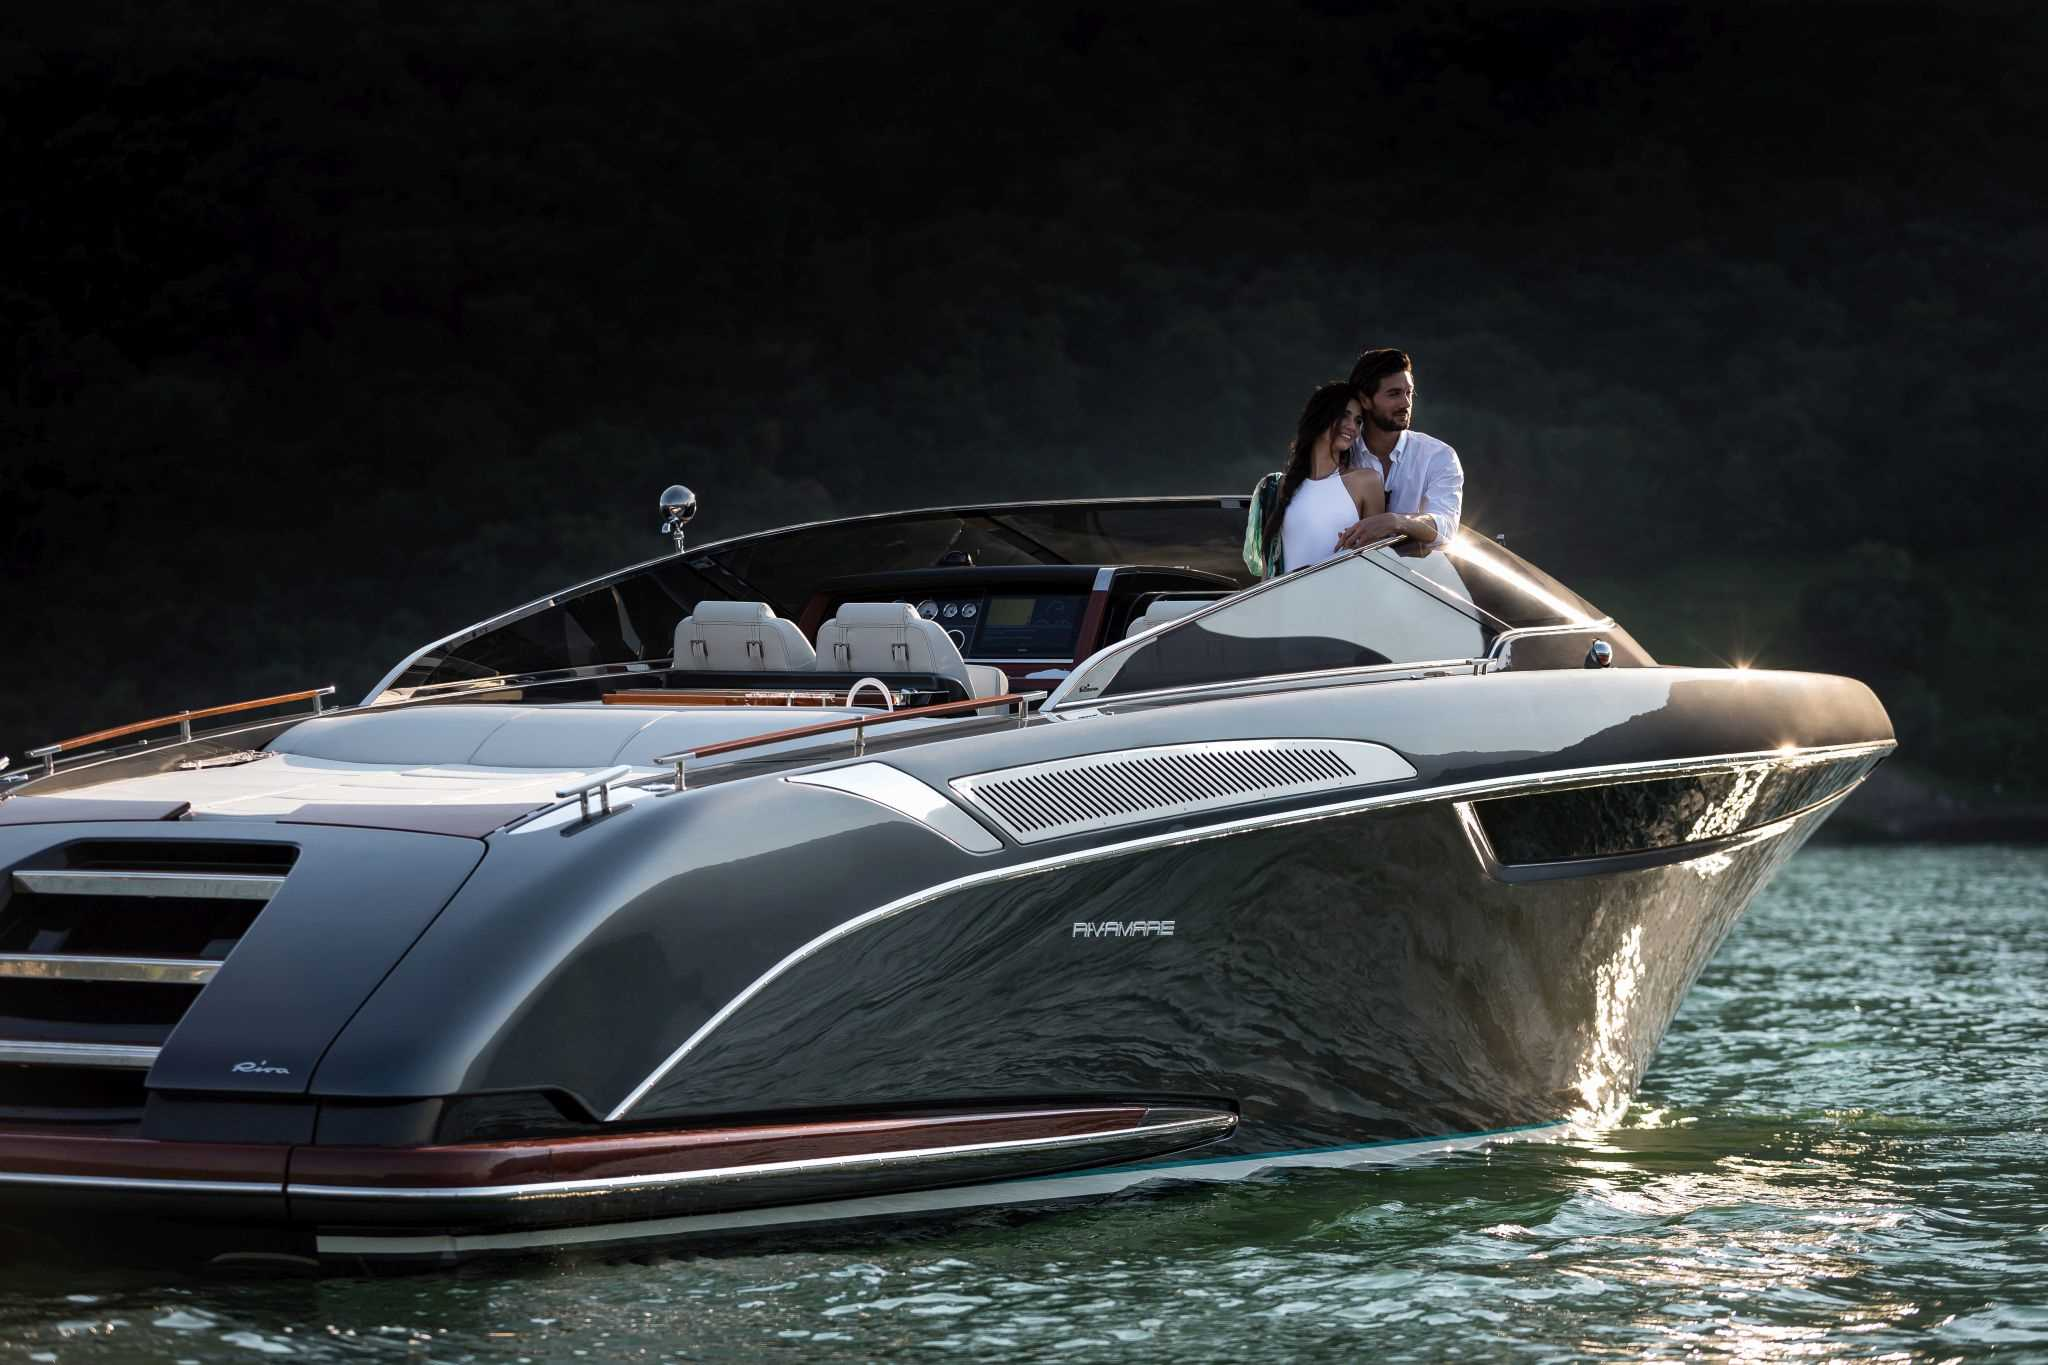 Riva Yacht Rivamare 38 FOR SALE 2016 Fort Lauderdale Boat Show Debut Chris Coughlin